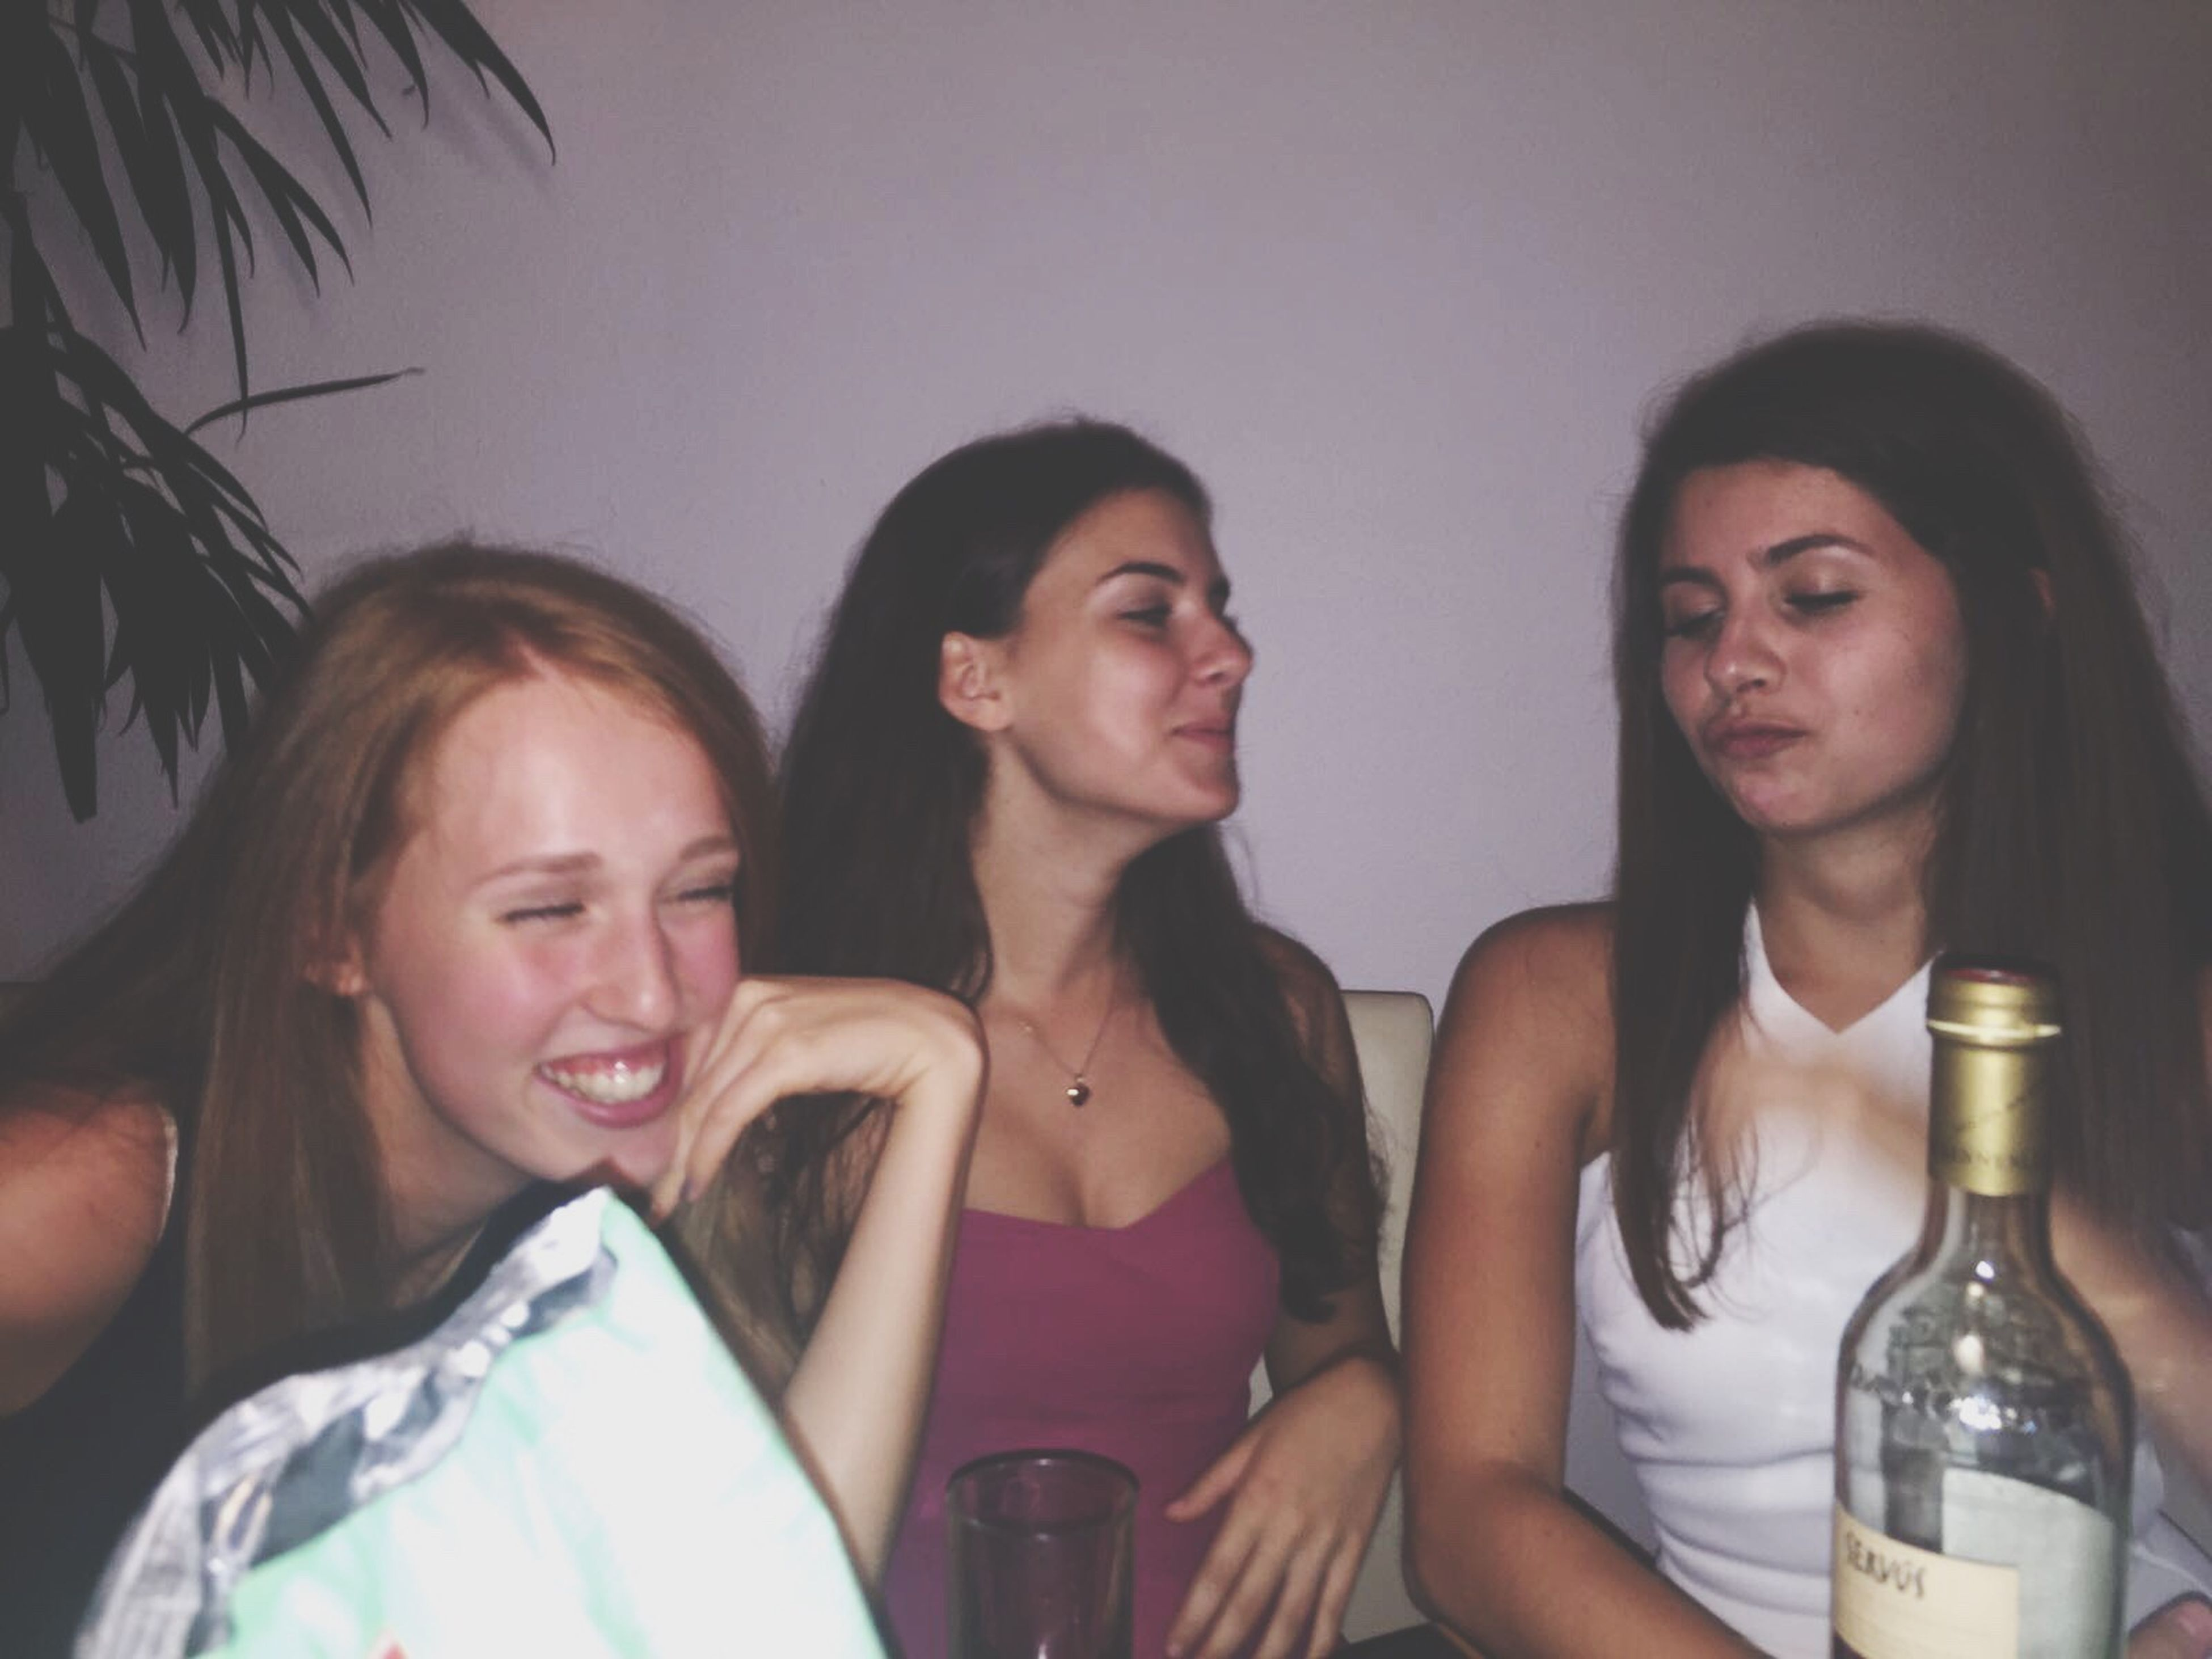 togetherness, young adult, young women, leisure activity, lifestyles, friendship, headshot, long hair, person, looking at camera, casual clothing, enjoyment, friends, weekend activities, focus on foreground